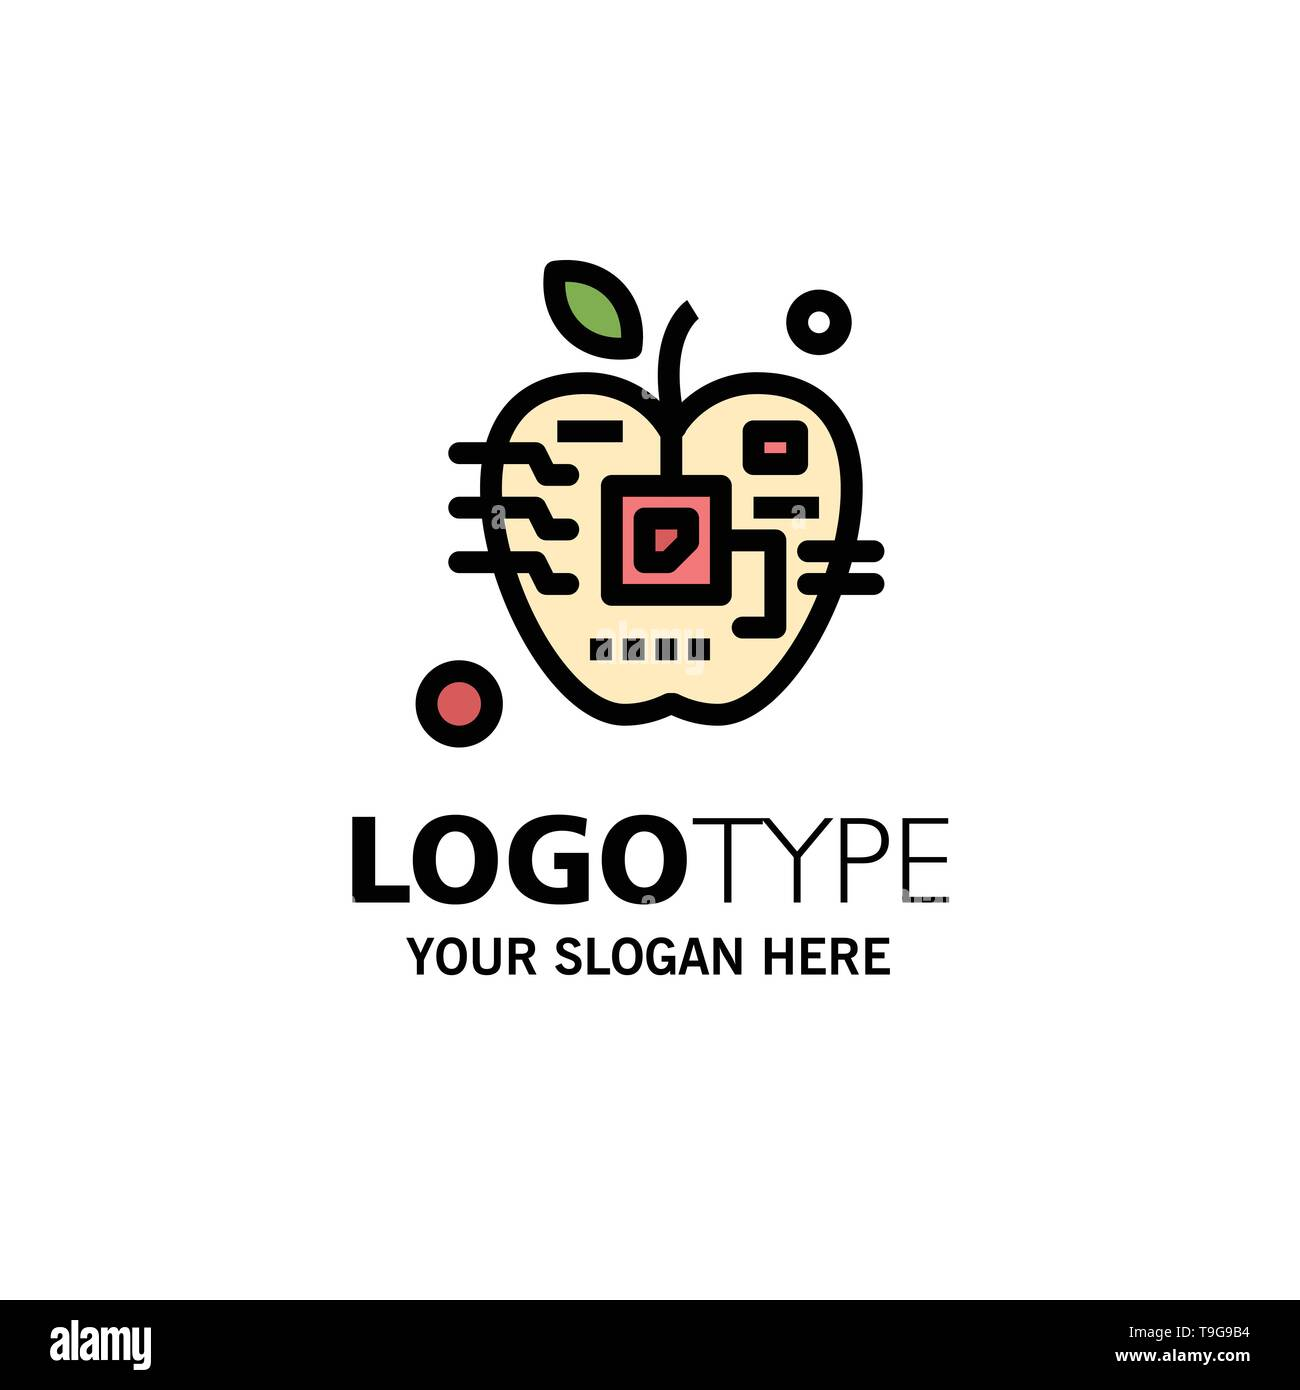 Apple, Artificial, Biology, Digital, Electronic Business Logo Template. Flat Color - Stock Image